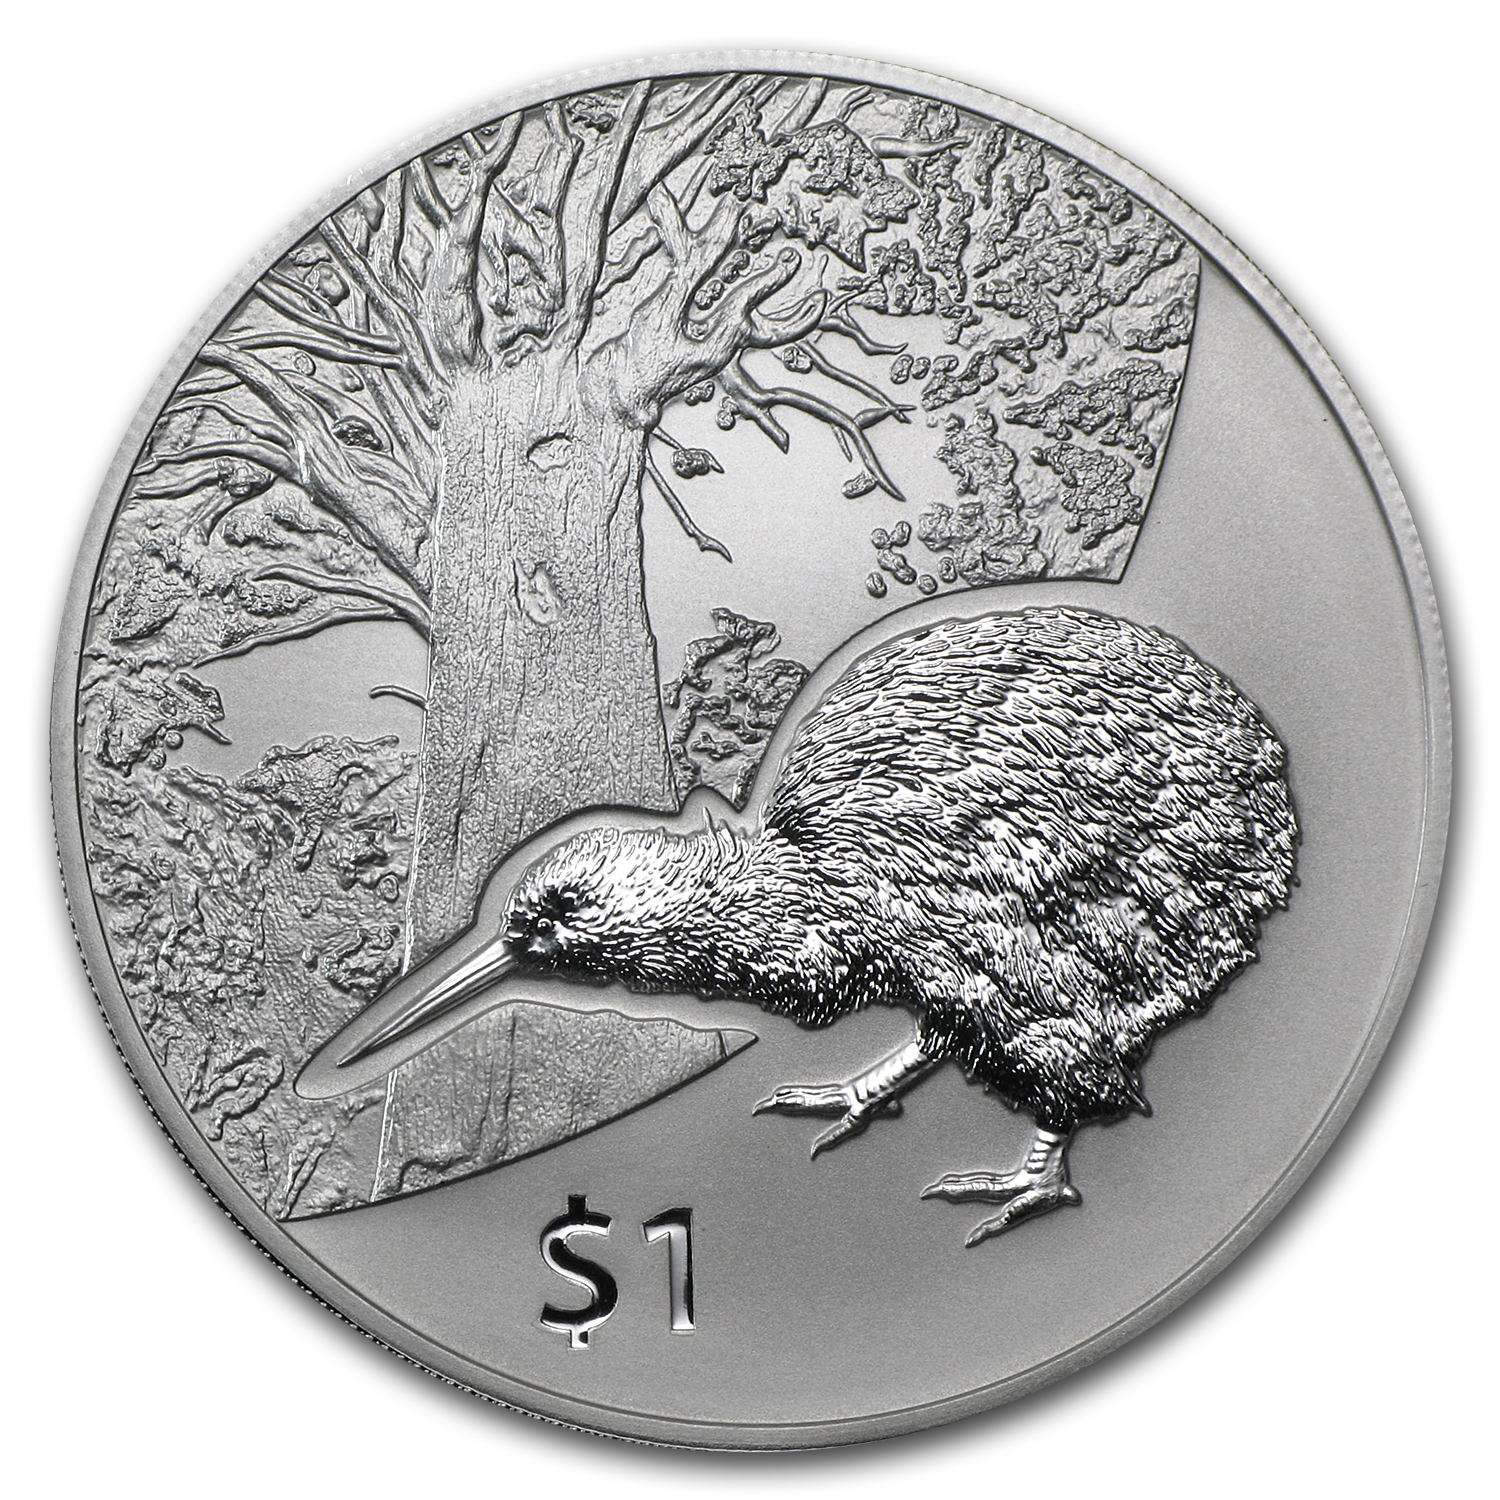 2013 1 oz Silver New Zealand Treasures $1 Kiwi Specimen (Capsule)